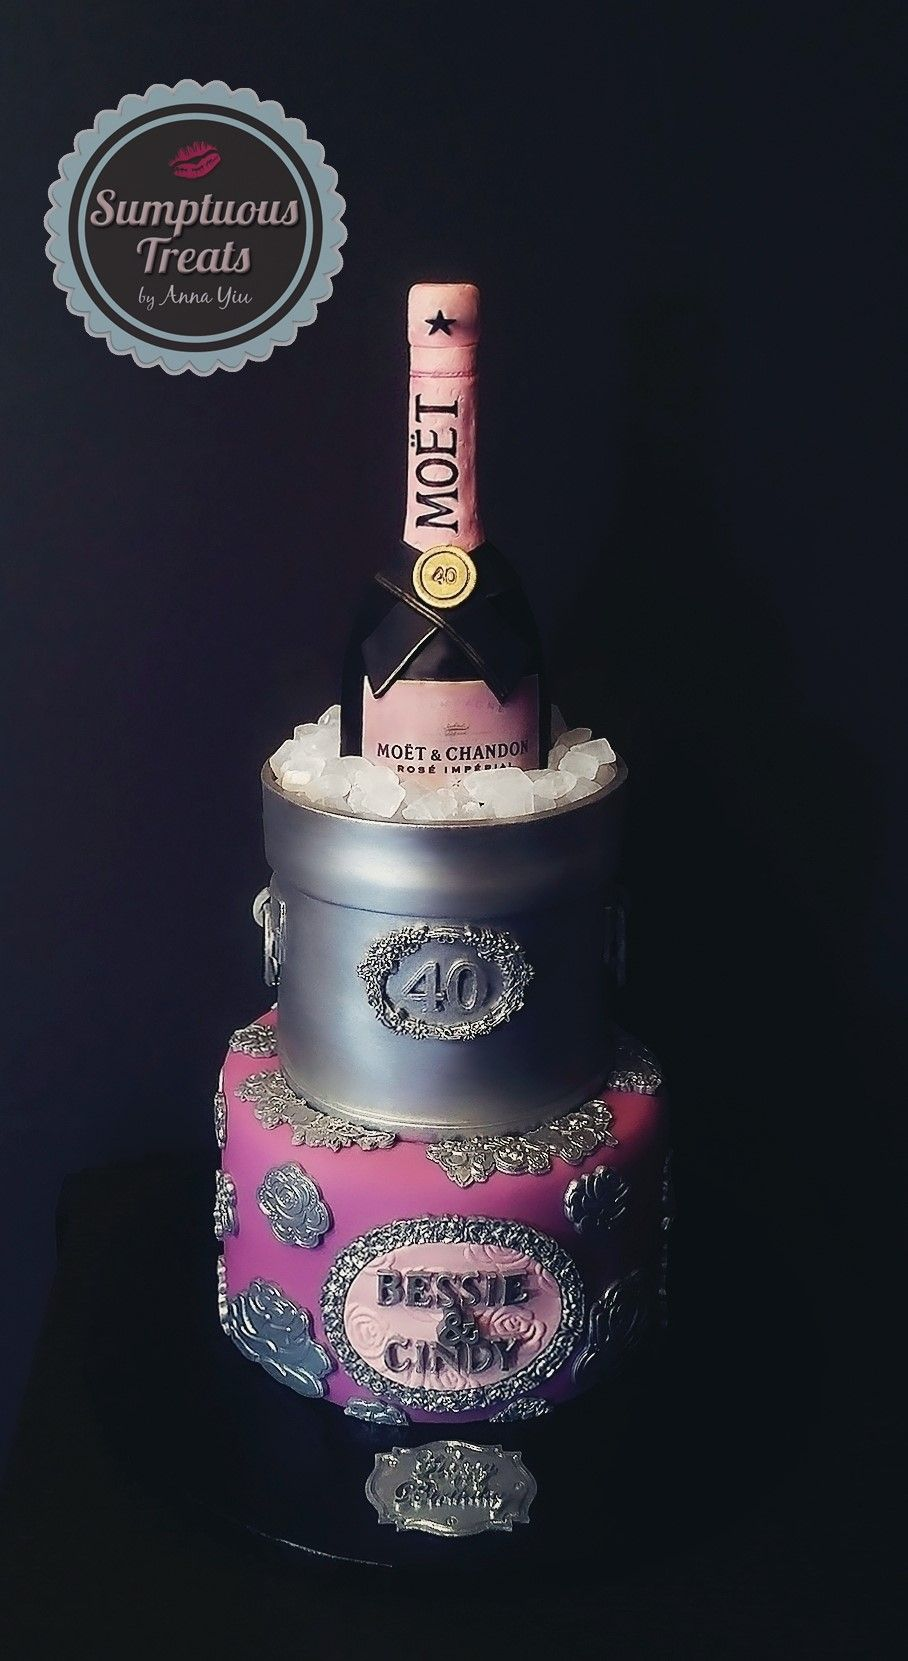 Pink Rose Moet Bottle 40th Birthday Cake Custom Made To Order Cakes Cookies Cupcakes Edible Art Sumptuoustreats